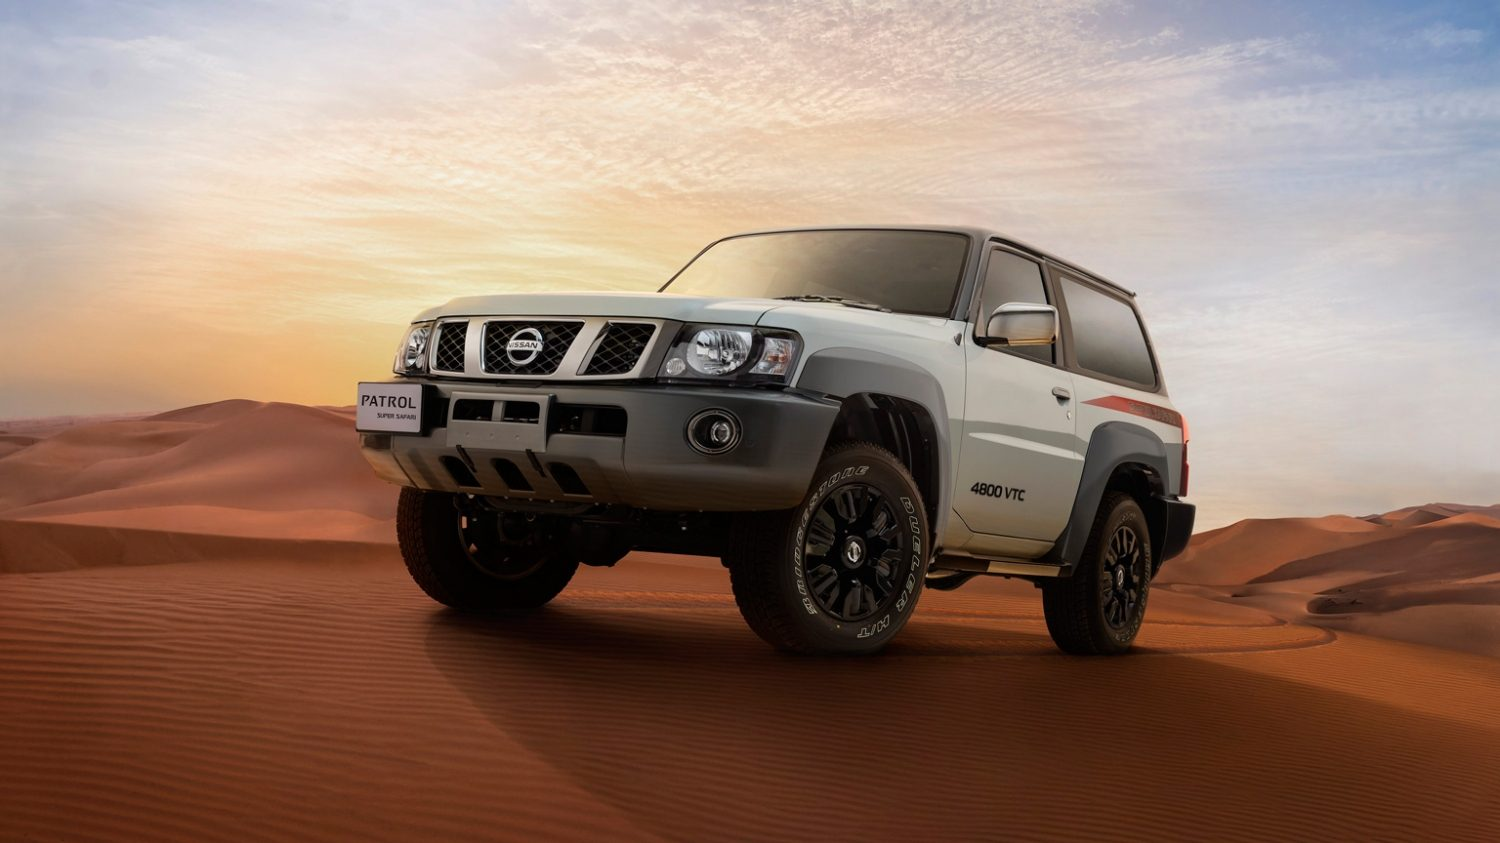 Legendary 3-door Patrol Super Safari returns to Nissan line-up